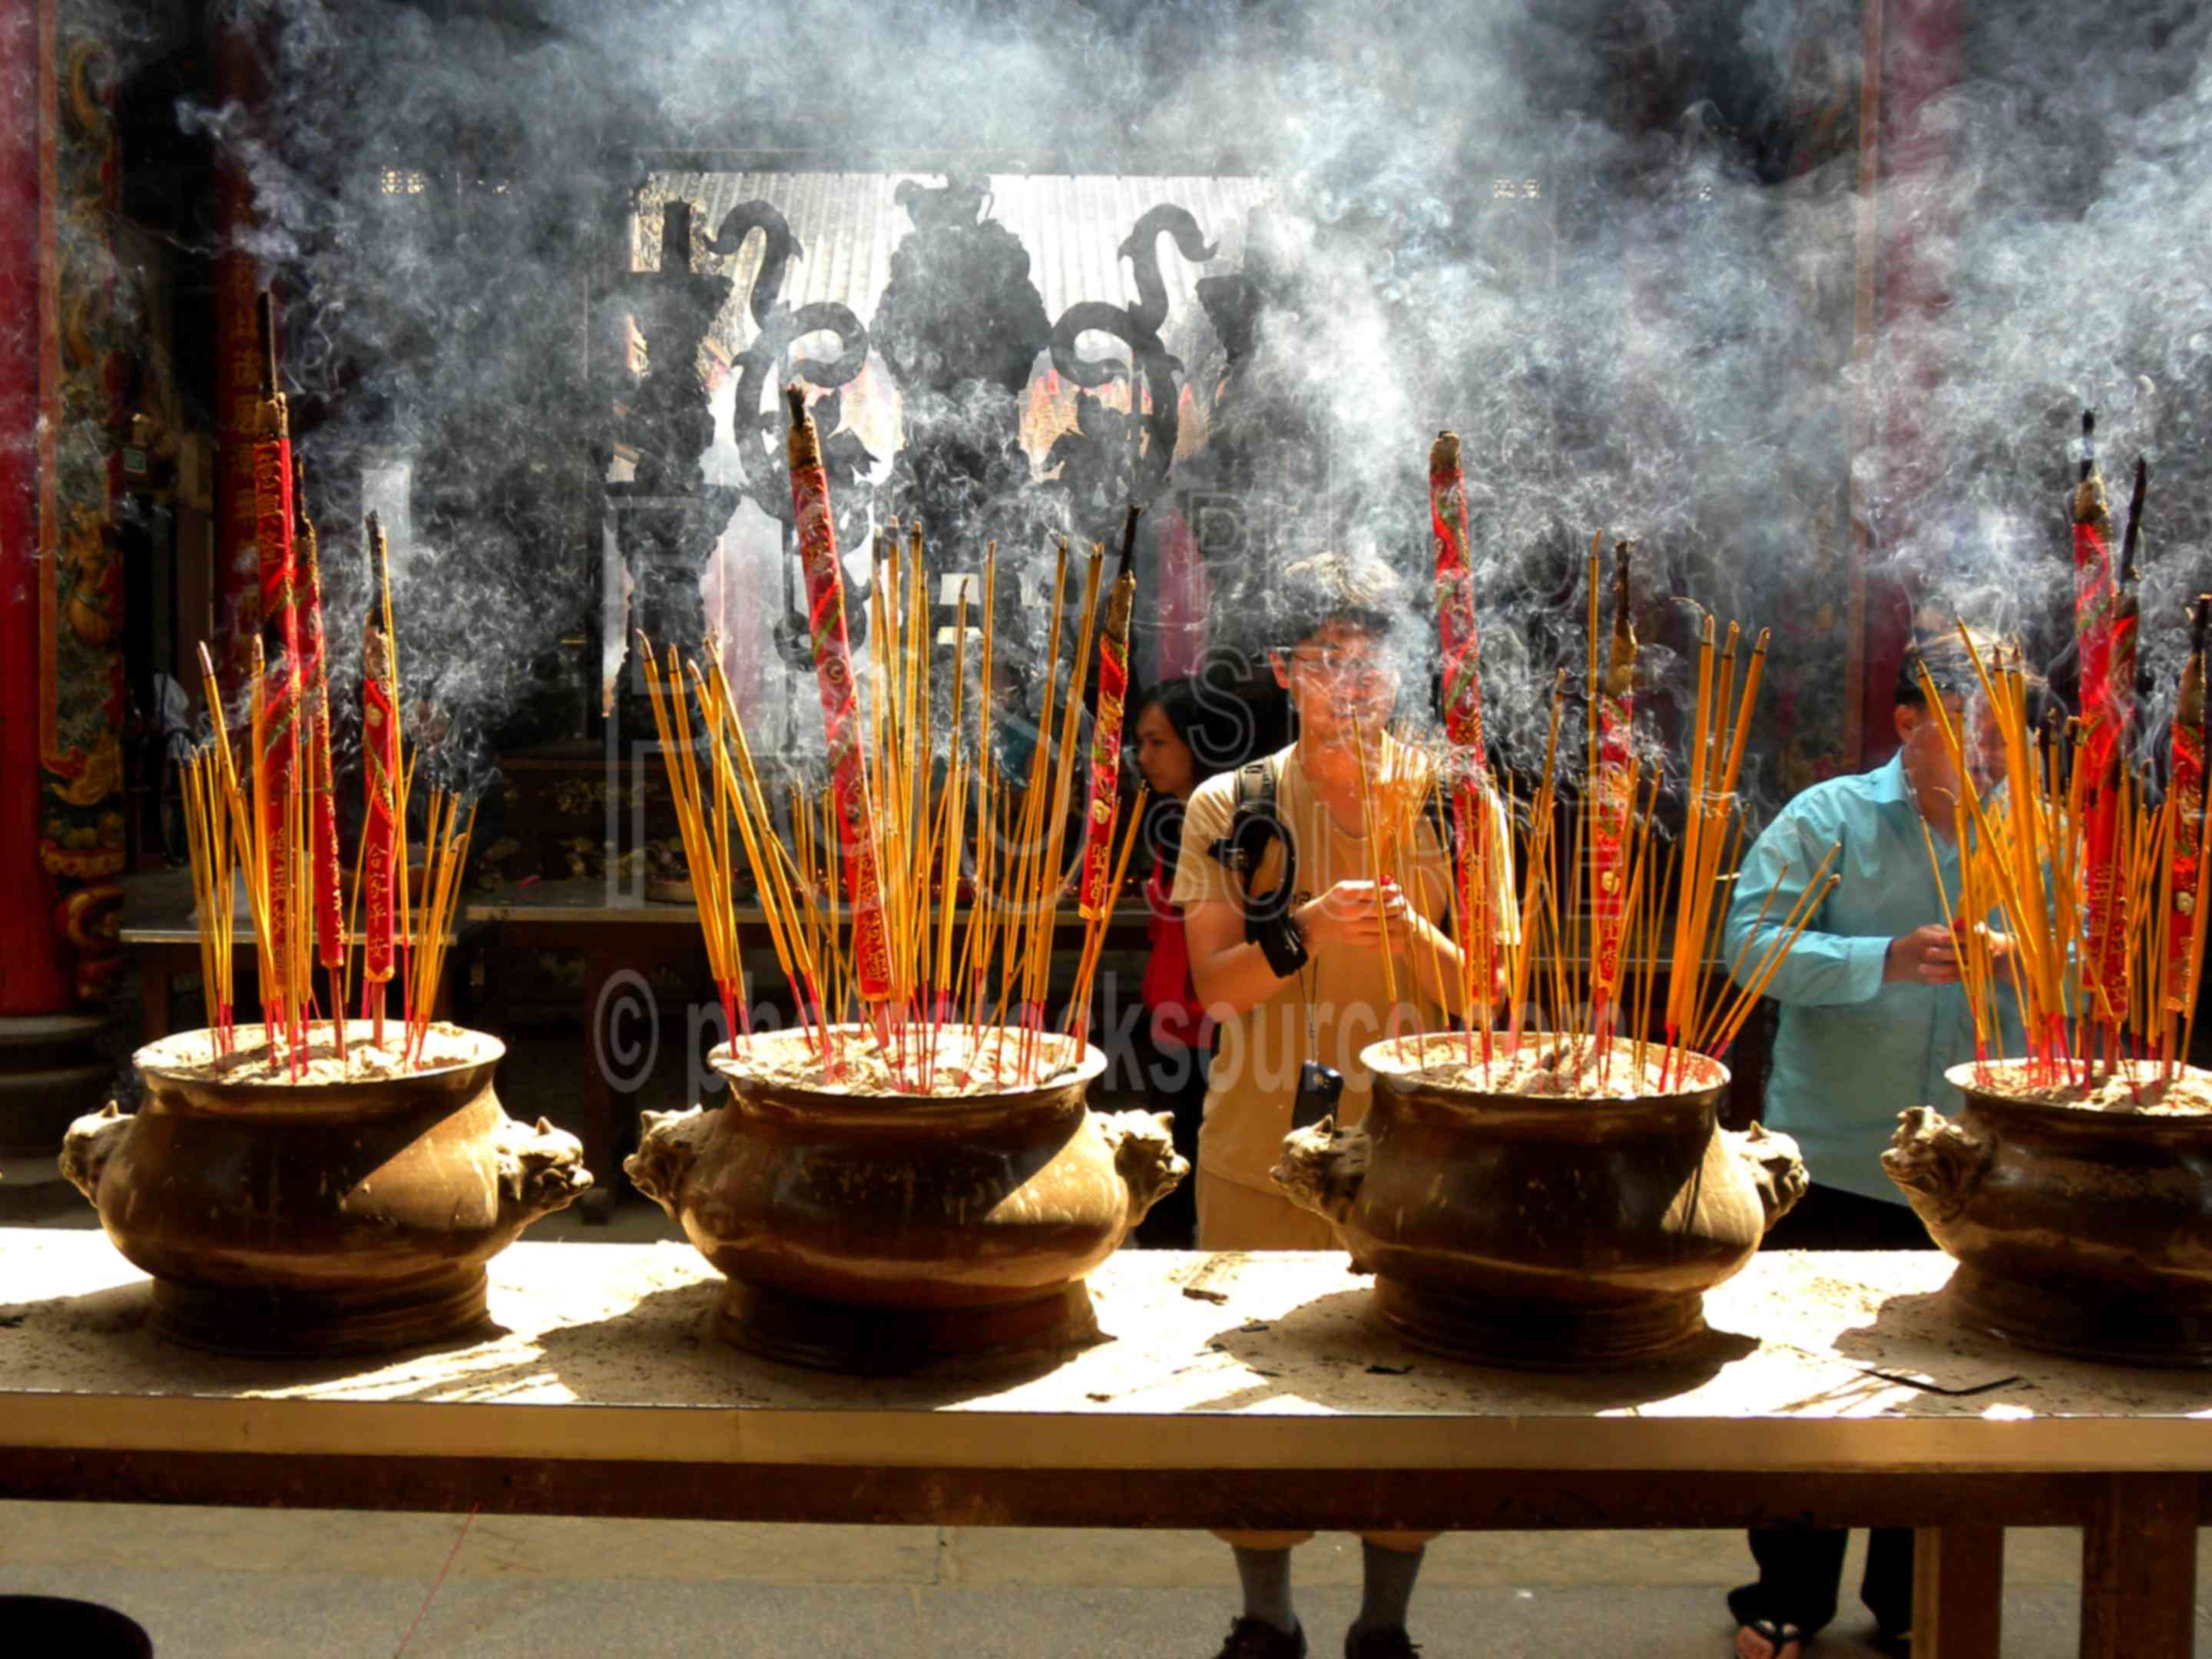 Thien Hau Temple Incense,temple,worship,religious,decoration,prayer,courtyard,incense,smoke,people